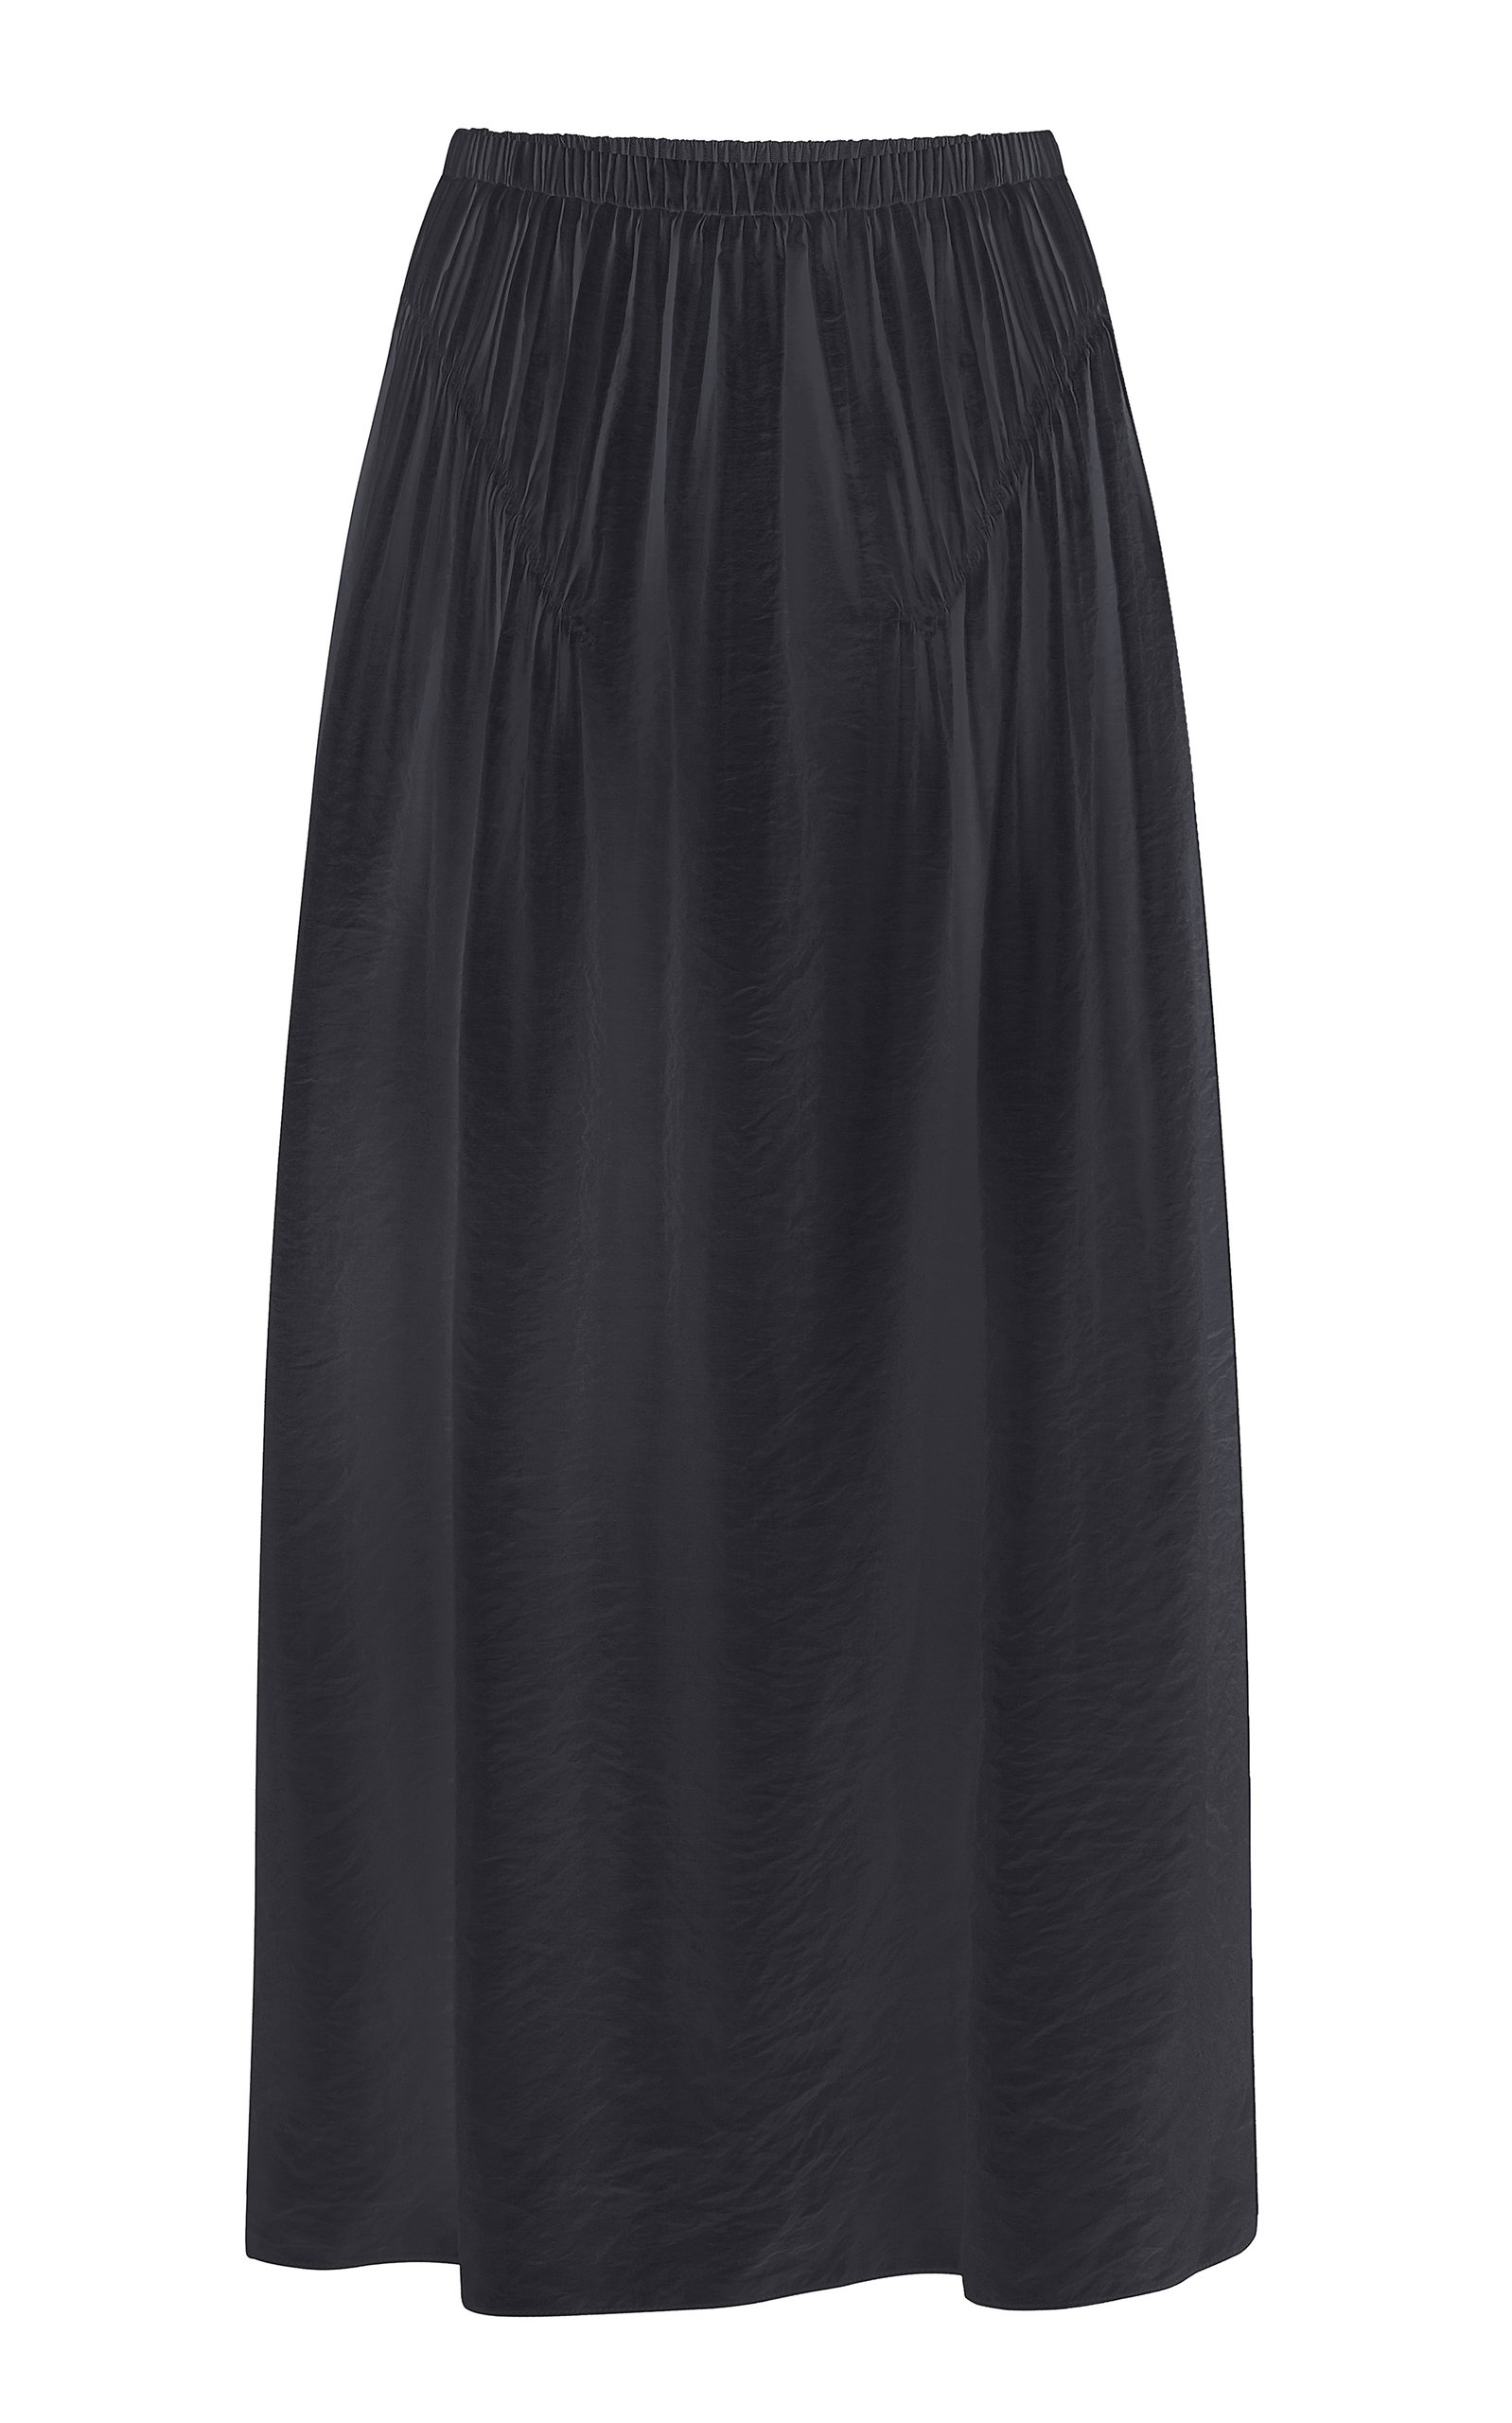 Anna October LIZ SMOCKED CREPE MIDI SKIRT